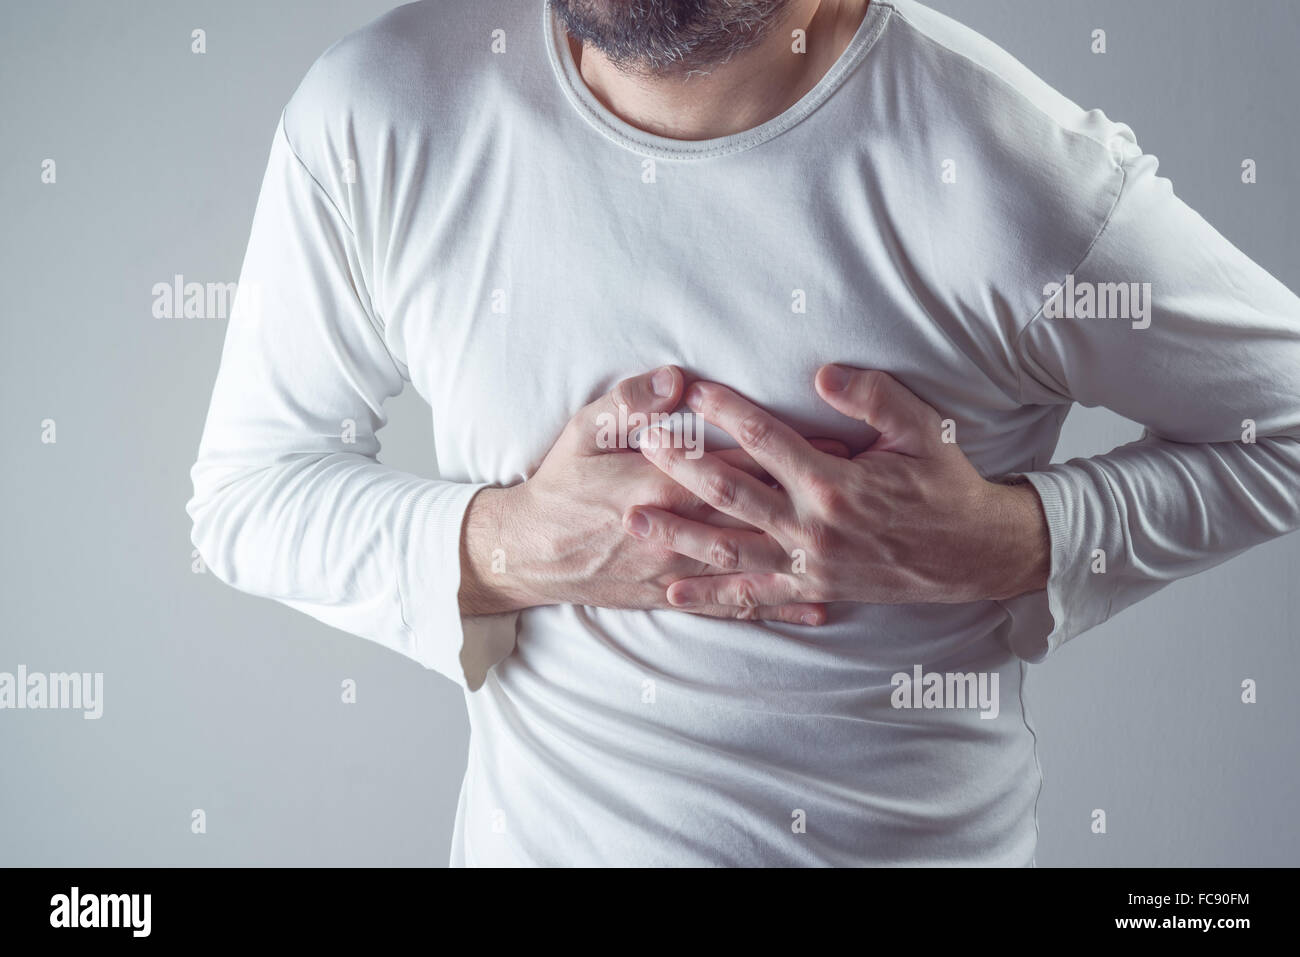 Severe heartache, man suffering from chest pain, having heart attack or painful cramps, pressing on chest, painful - Stock Image